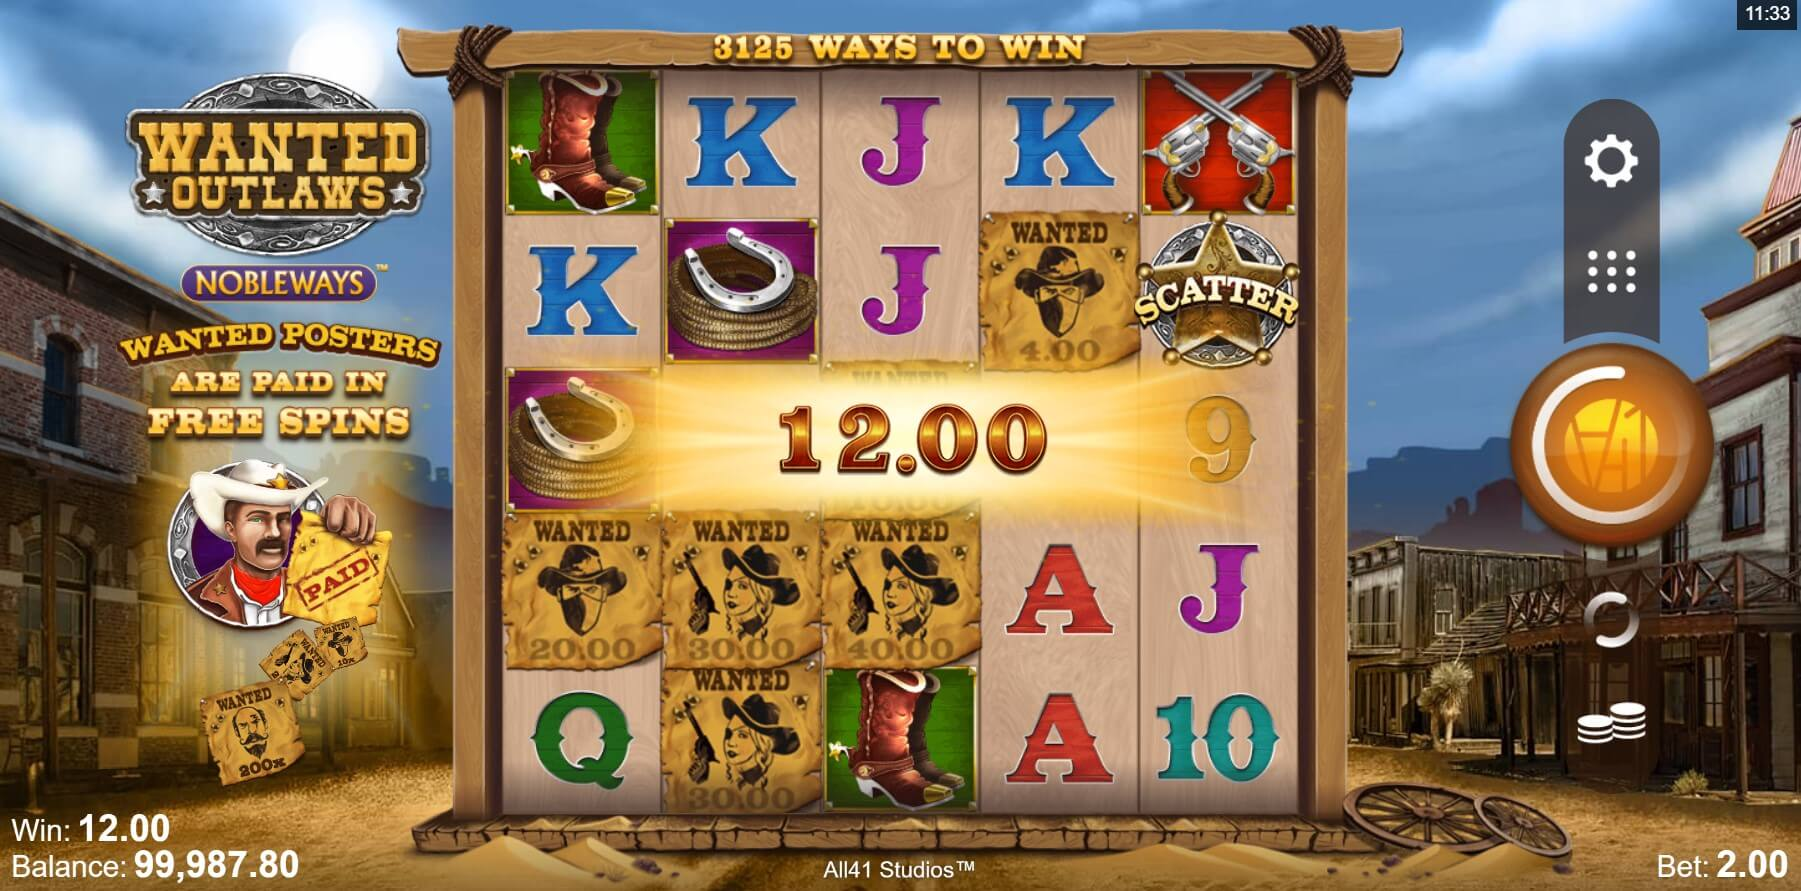 Wanted Outlaws Nobleways Slot Game